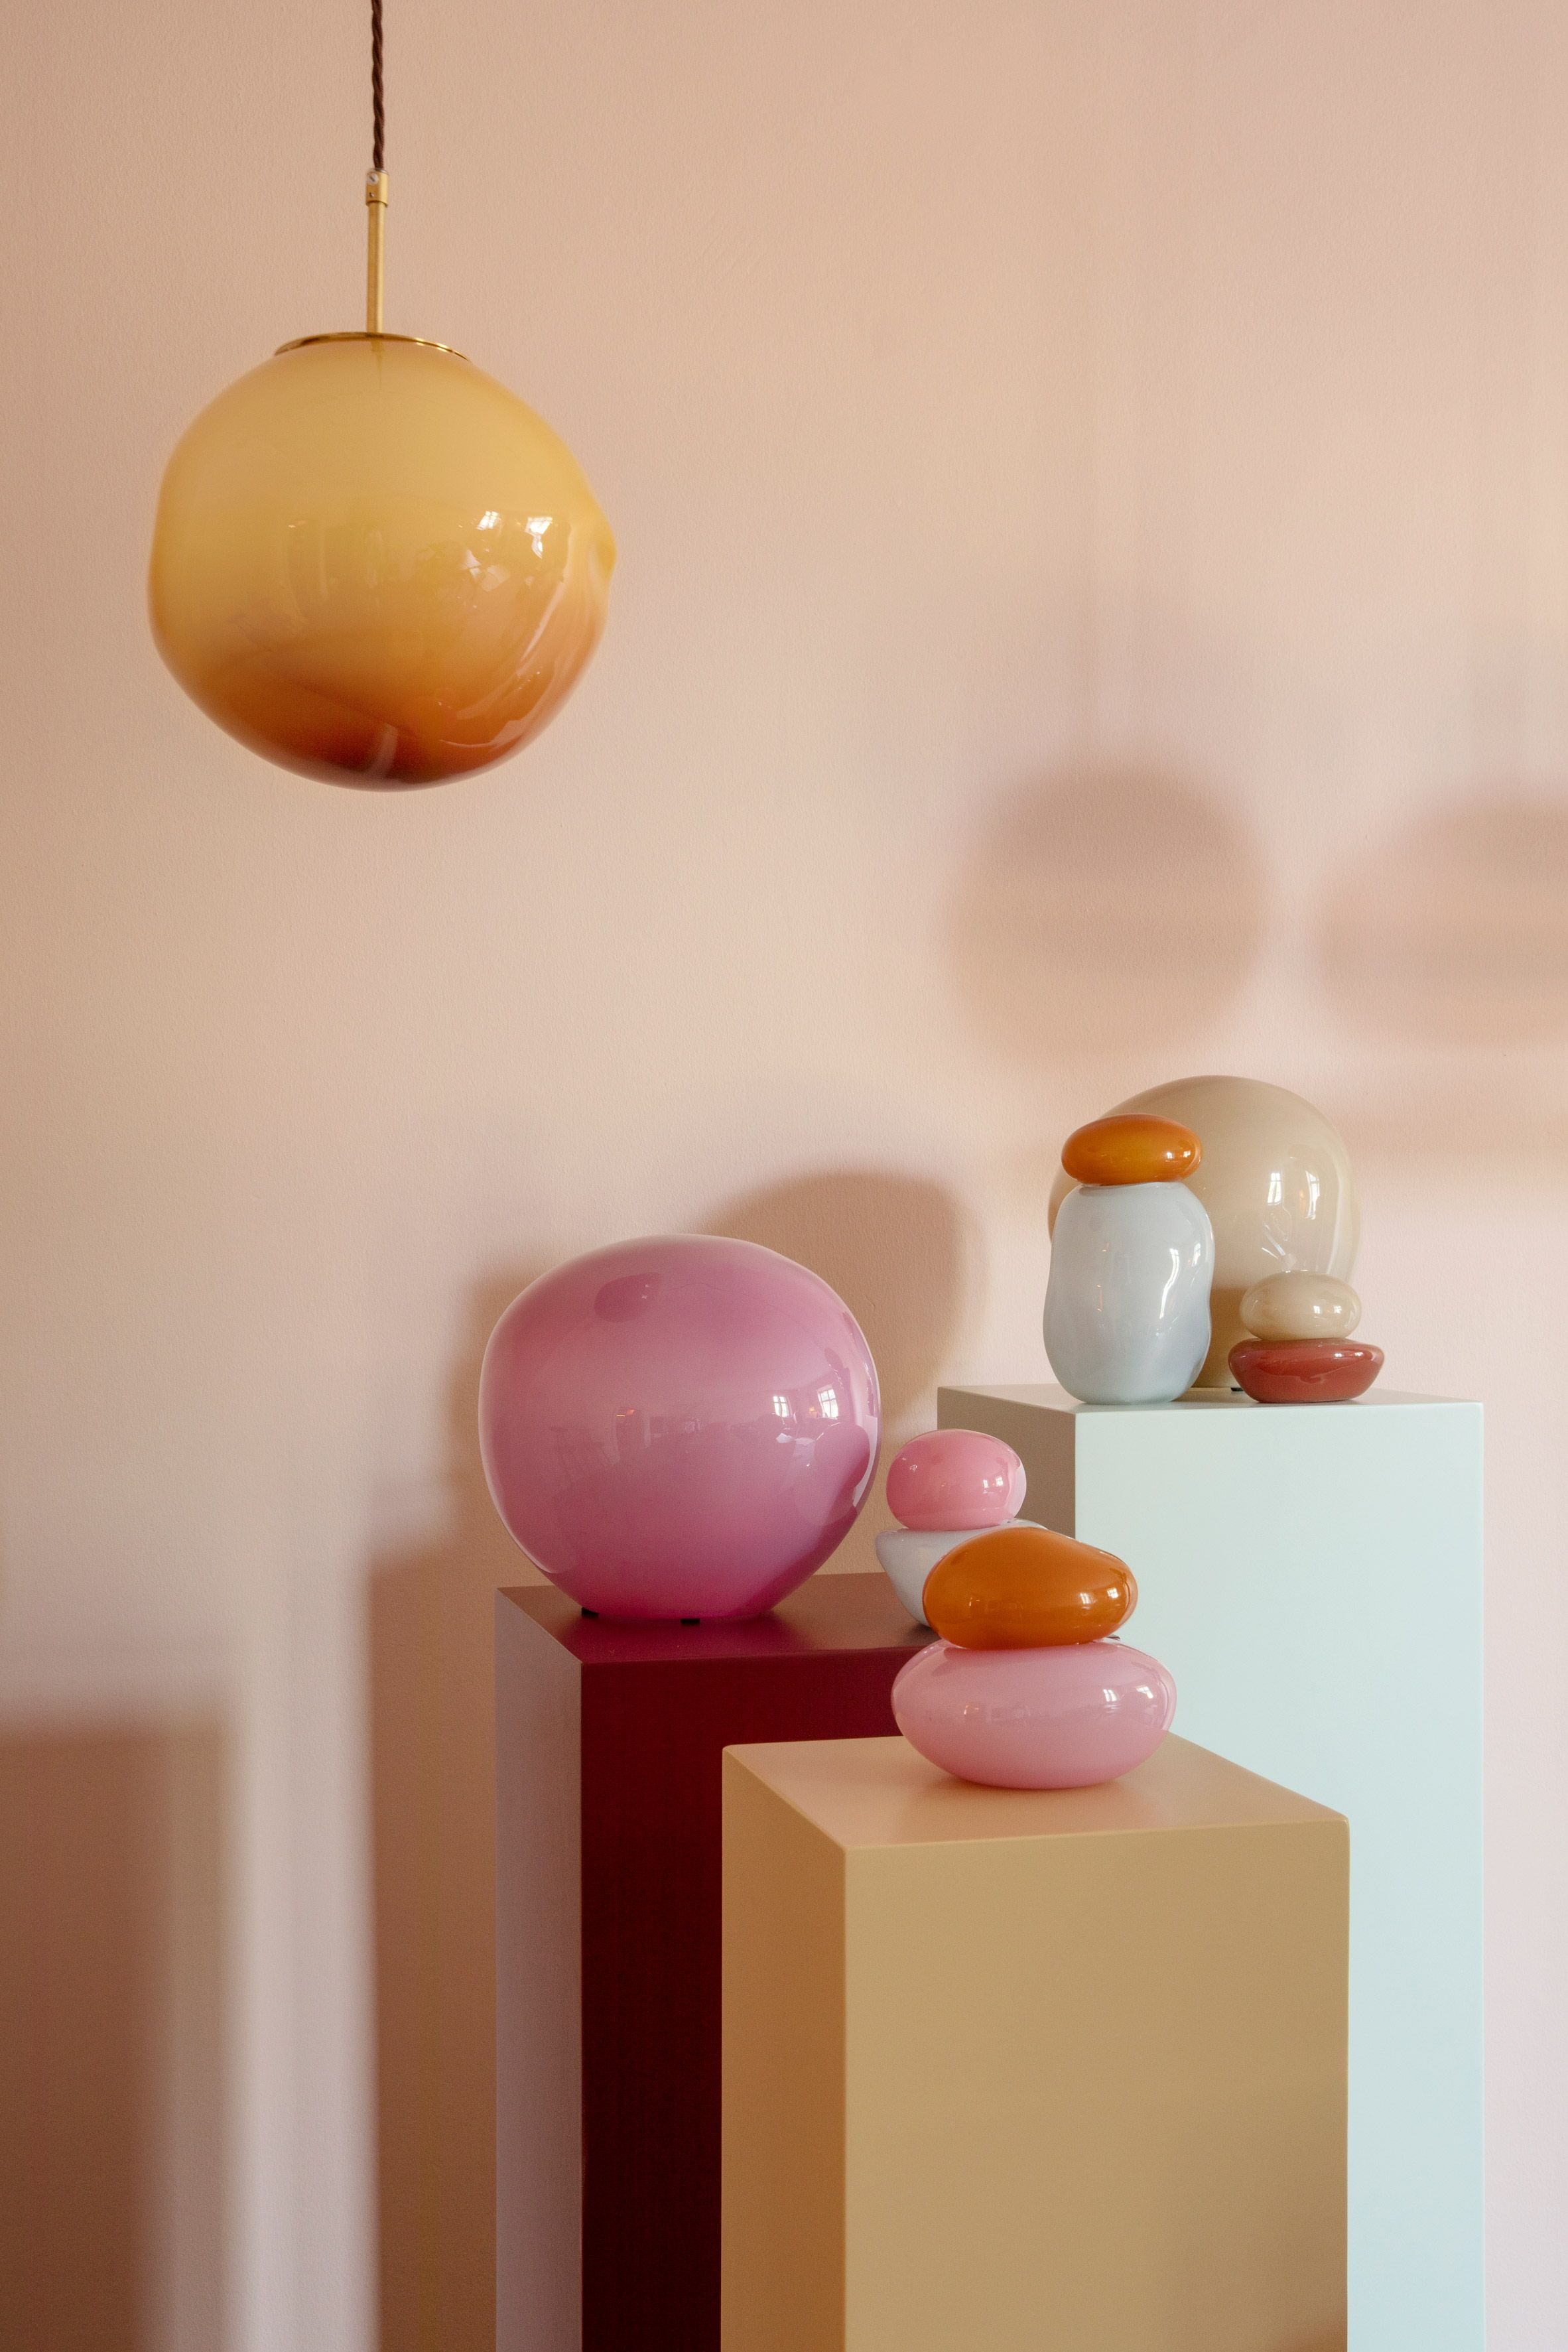 Helle Mardahl Designs Candy Collection Lamps Based On Childhood Memories